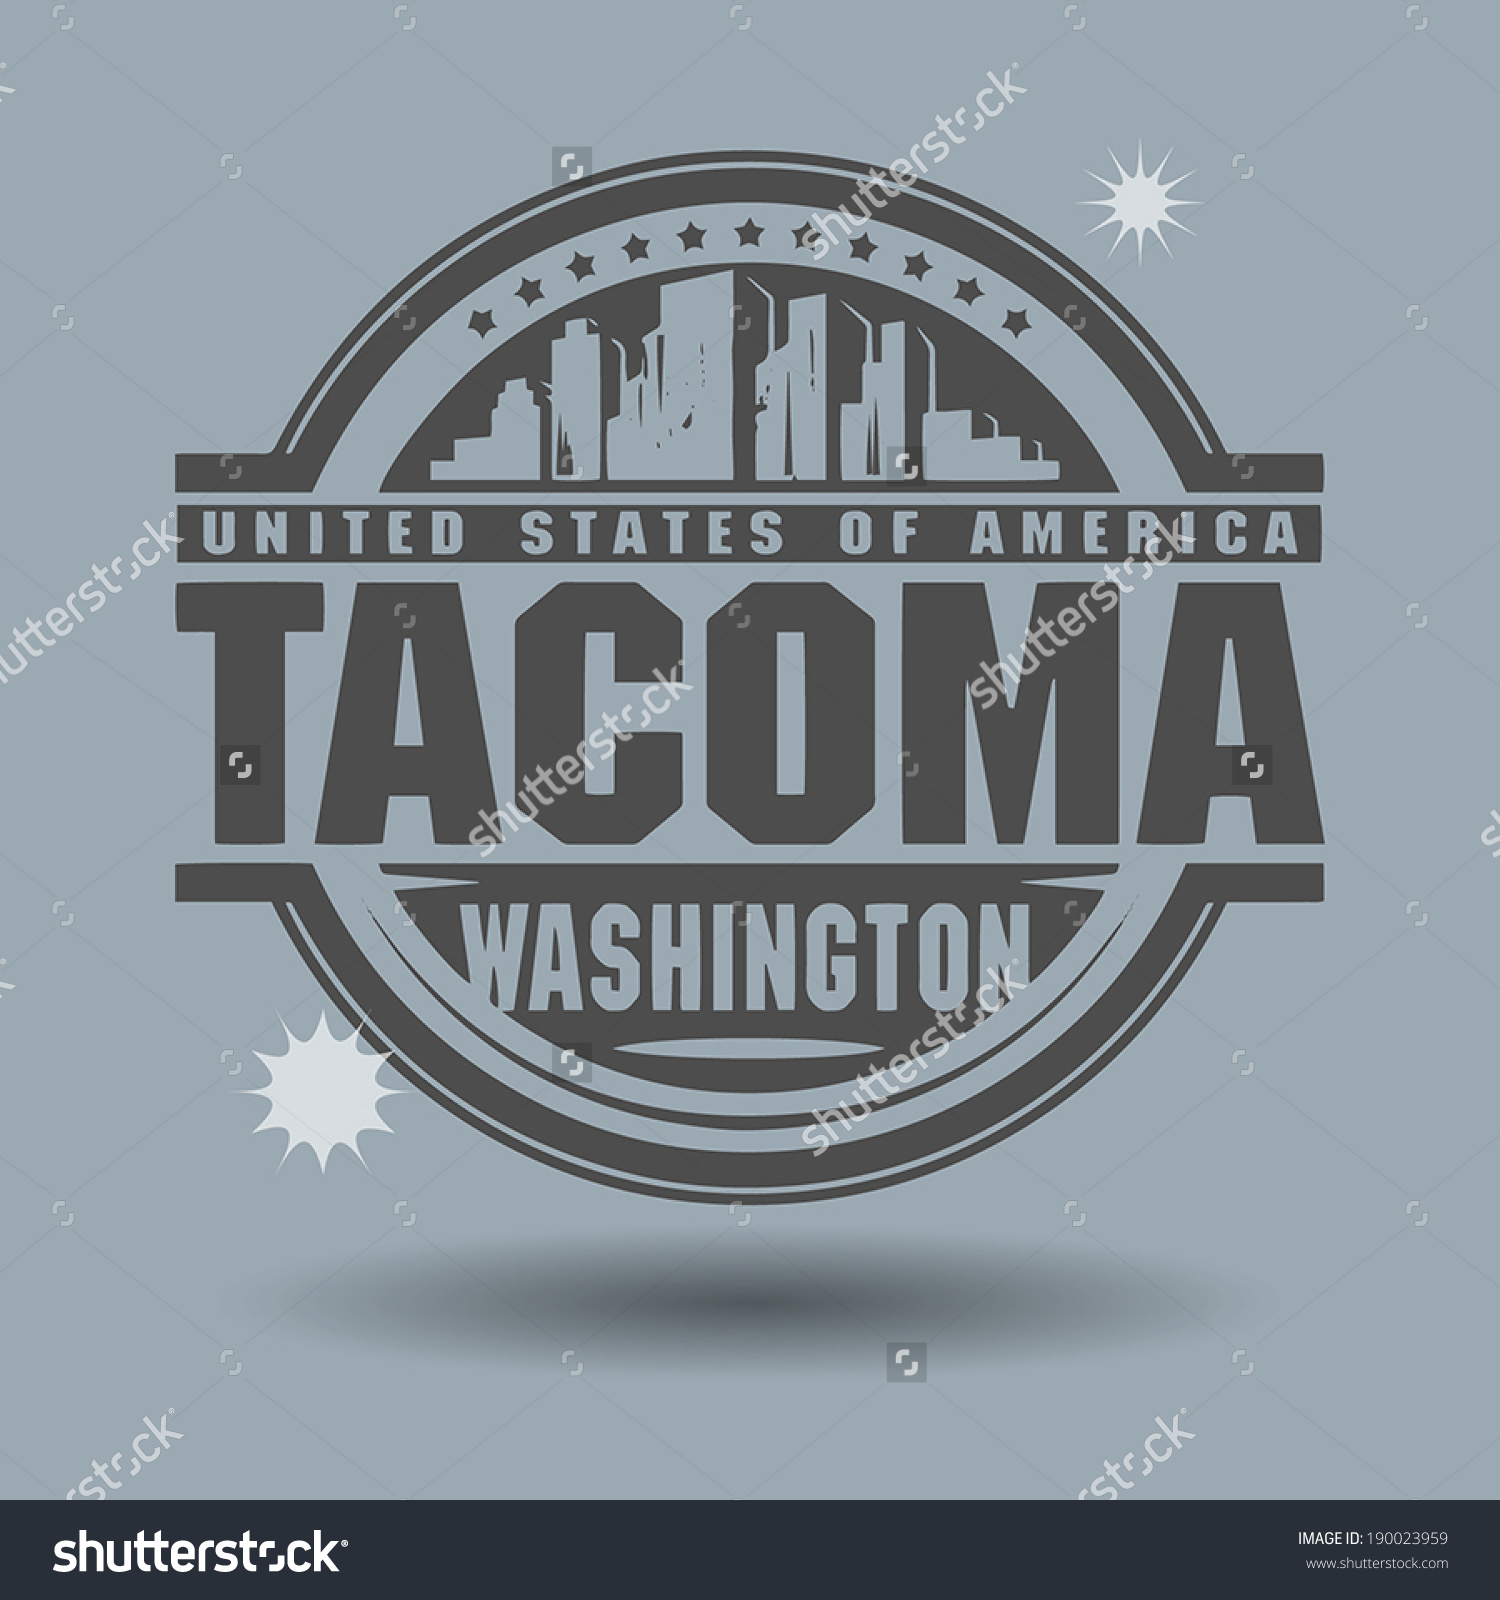 Stamp Label Text Tacoma Washington Inside Stock Vector 190023959.